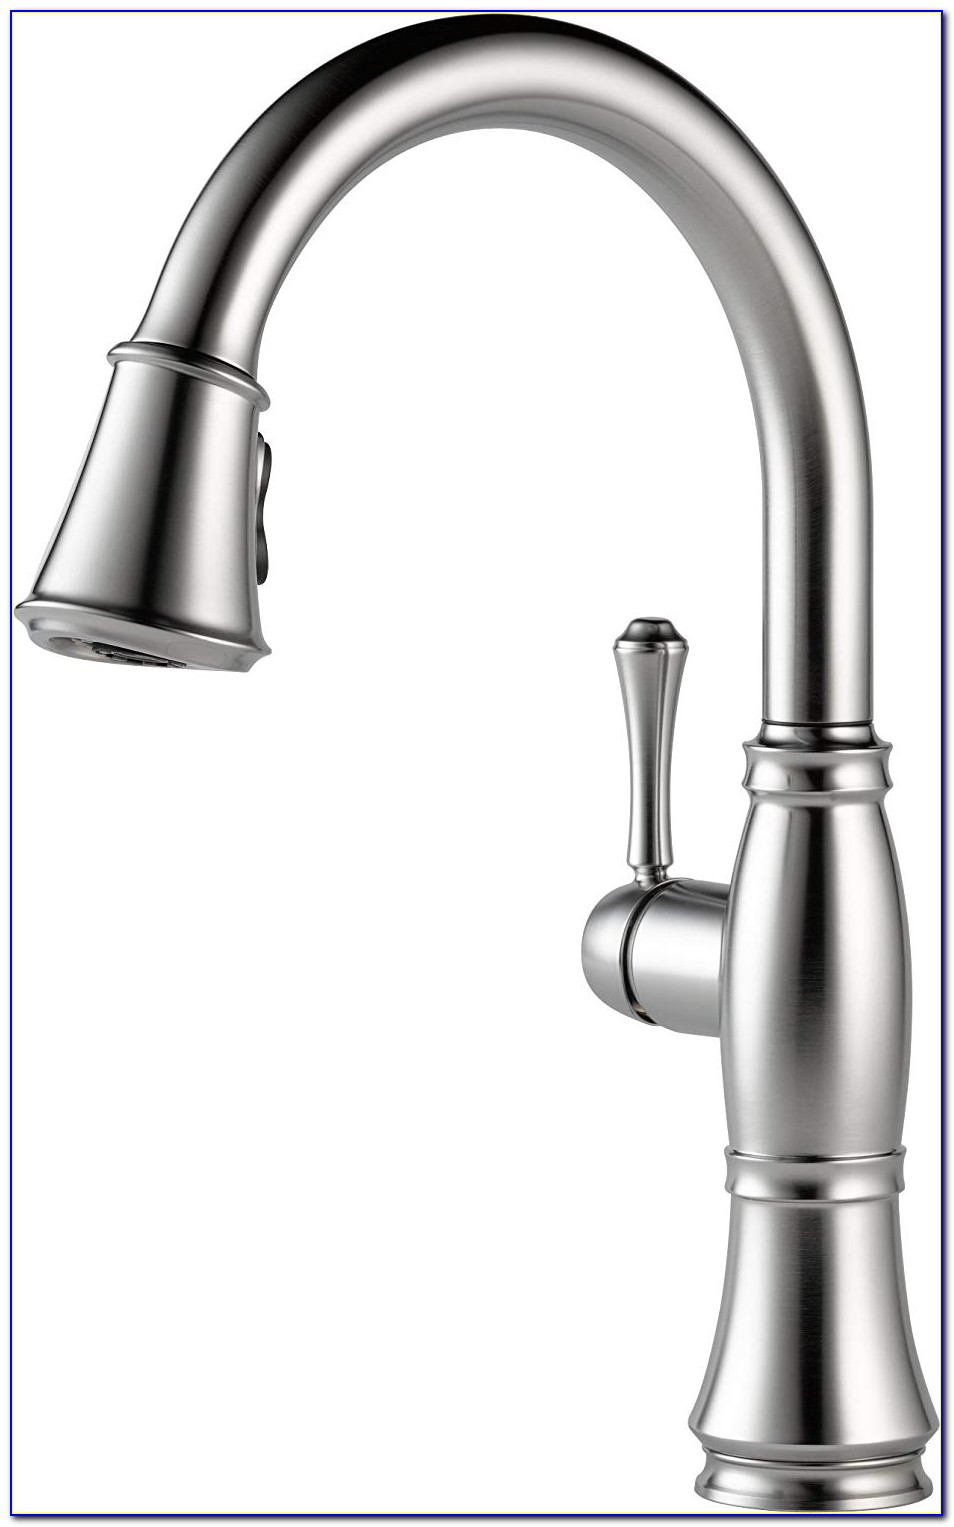 Best Pull Down Faucets 2017